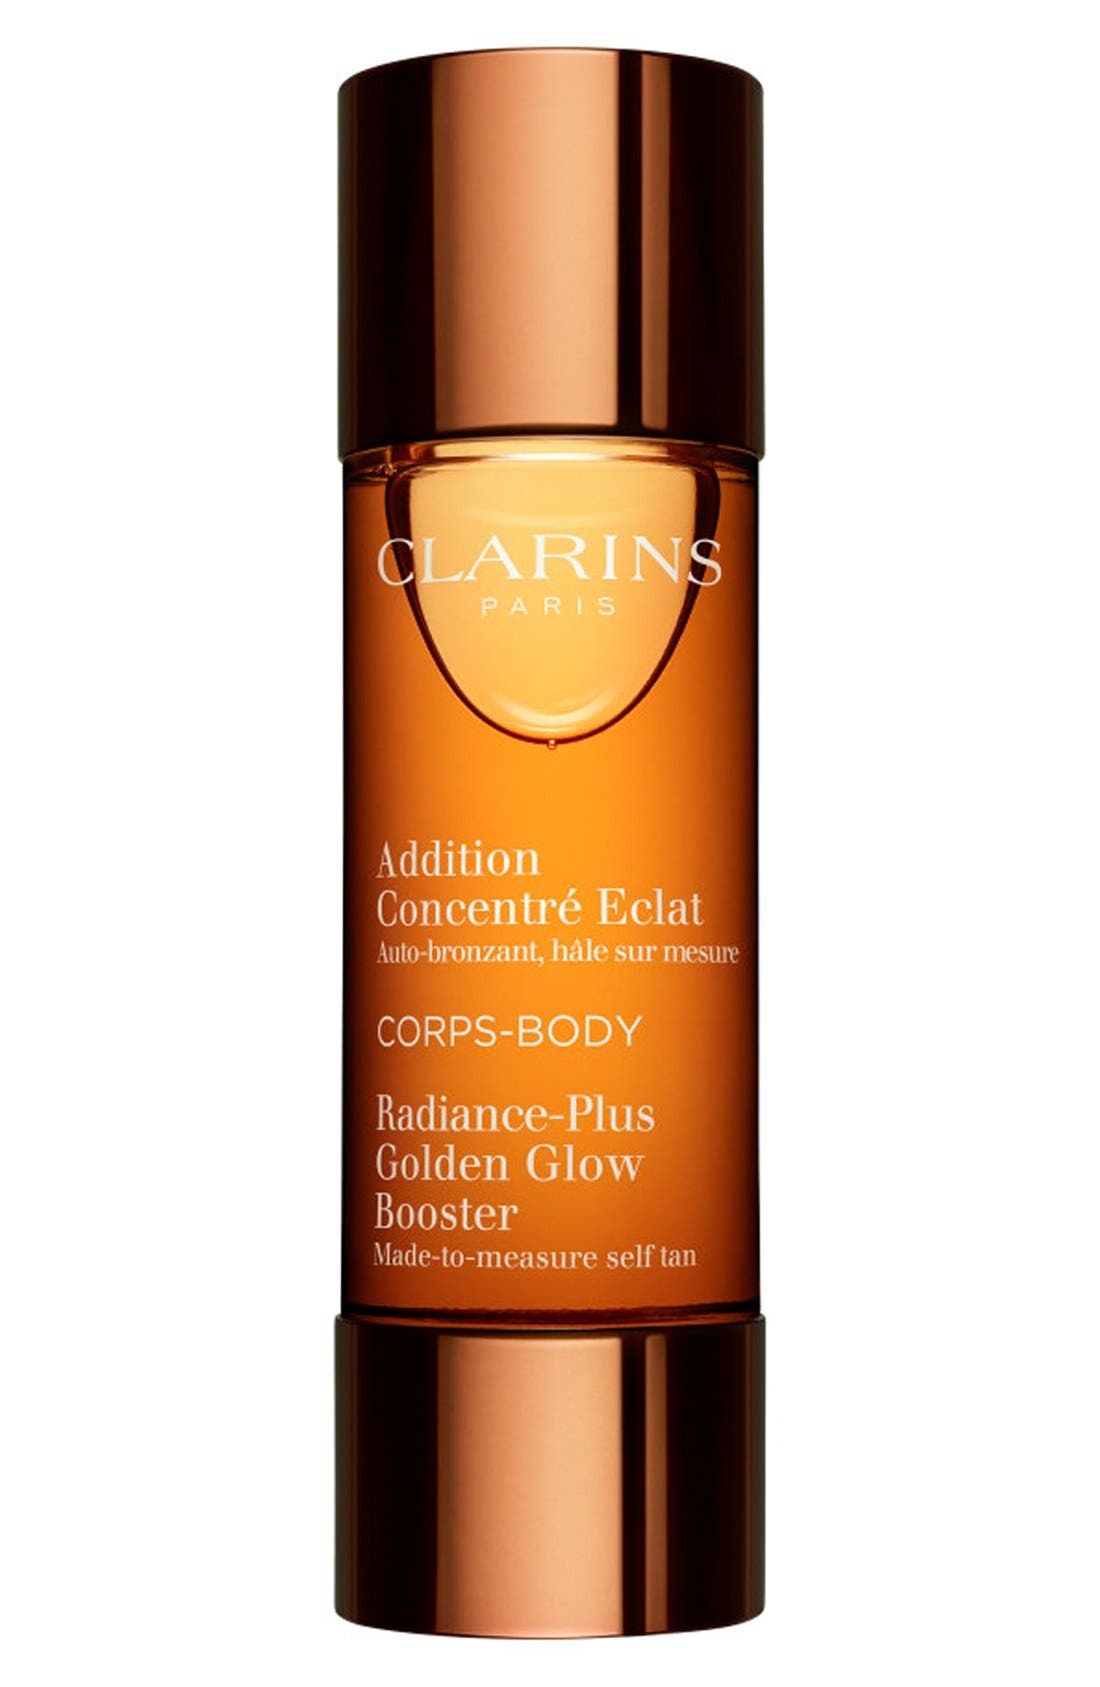 Radiance-Plus Golden Glow Booster for Body   Nordstrom